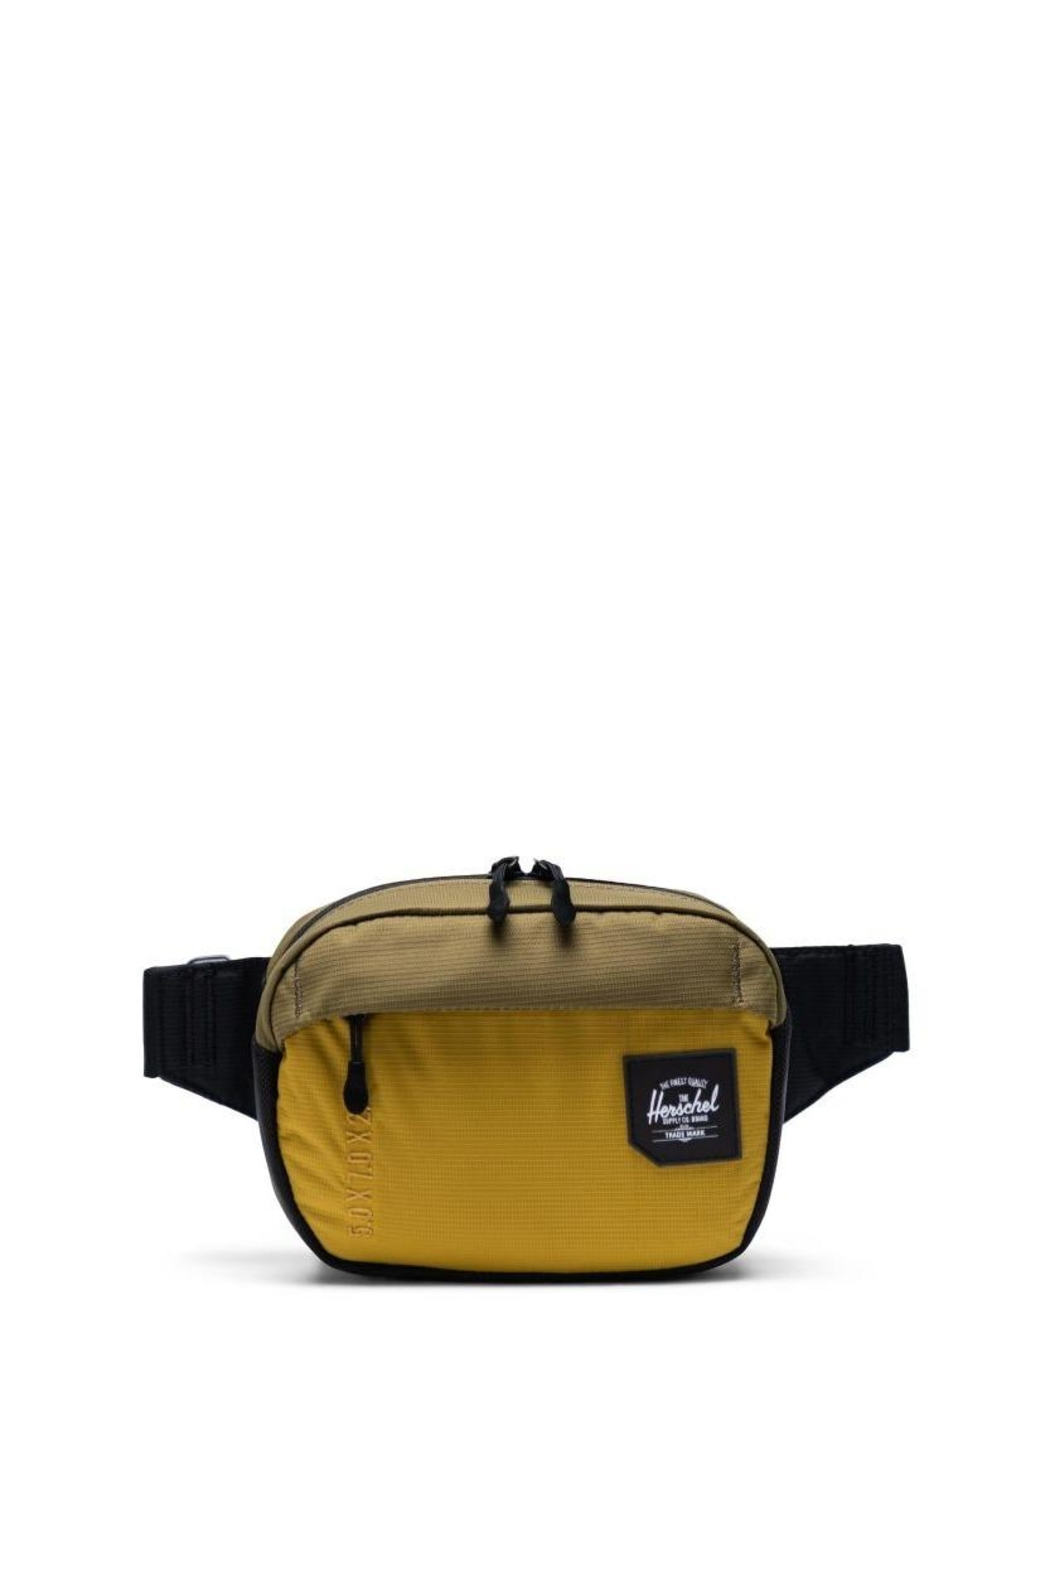 Herschel Supply Co. Small Hip Pack - Main Image